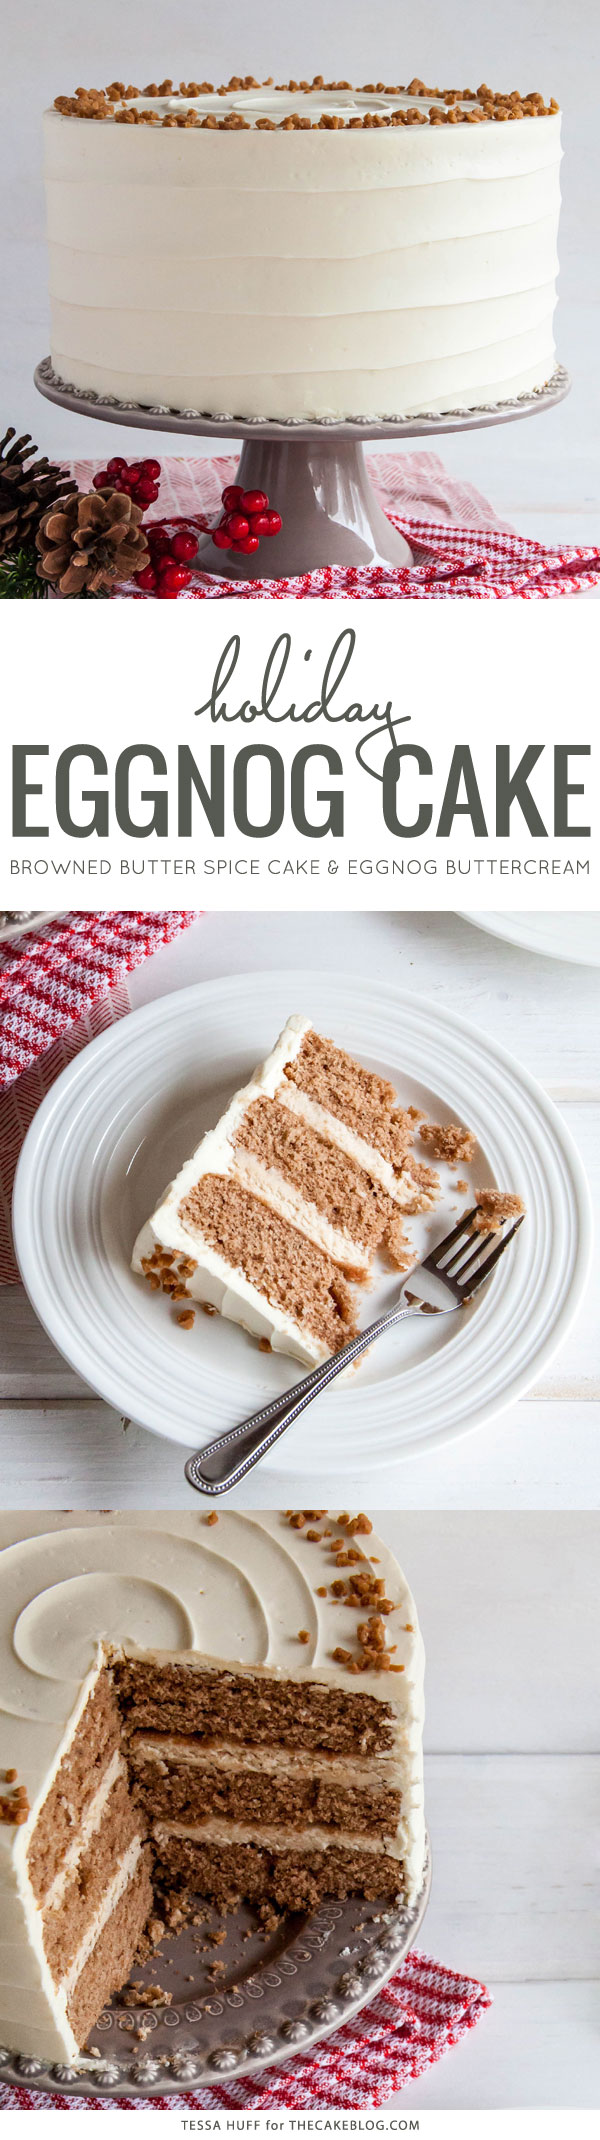 Eggnog Cake! A browned butter spice cake with eggnog buttercream, perfect for holiday entertaining & Christmas dessert | by Tessa Huff for TheCakeBlog.com